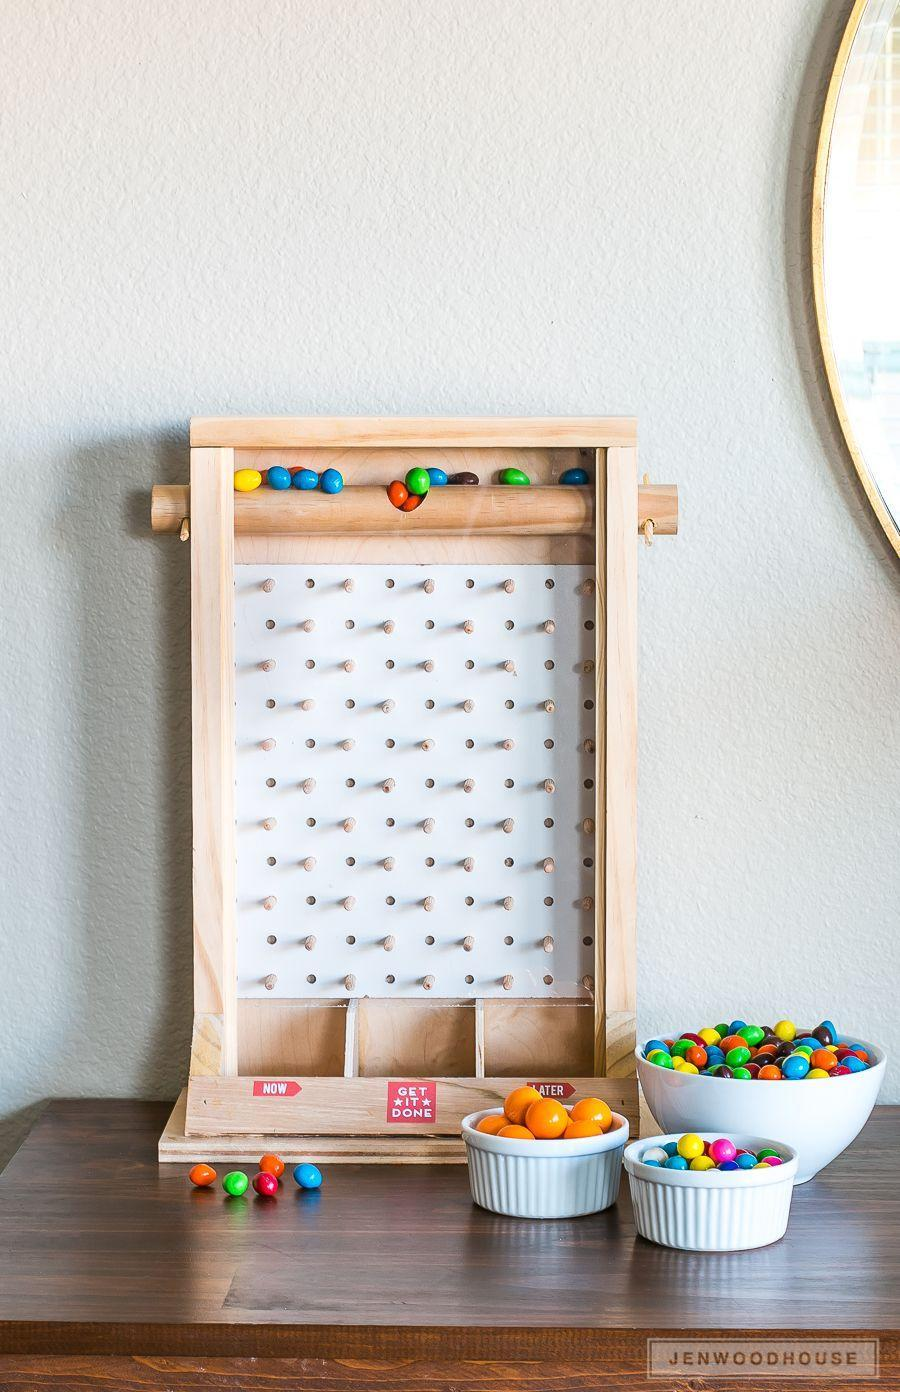 """<p>Does Dad have a sweet tooth? Help him satisfy his cravings with this nifty DIY candy dispenser (you can even pick and choose from his favorite candies to """"personalize"""" it further).</p><p><strong>Get the tutorial at <a href=""""https://jenwoodhouse.com/diy-candy-dispenser/"""" rel=""""nofollow noopener"""" target=""""_blank"""" data-ylk=""""slk:The House of Wood"""" class=""""link rapid-noclick-resp"""">The House of Wood</a>.</strong></p>"""